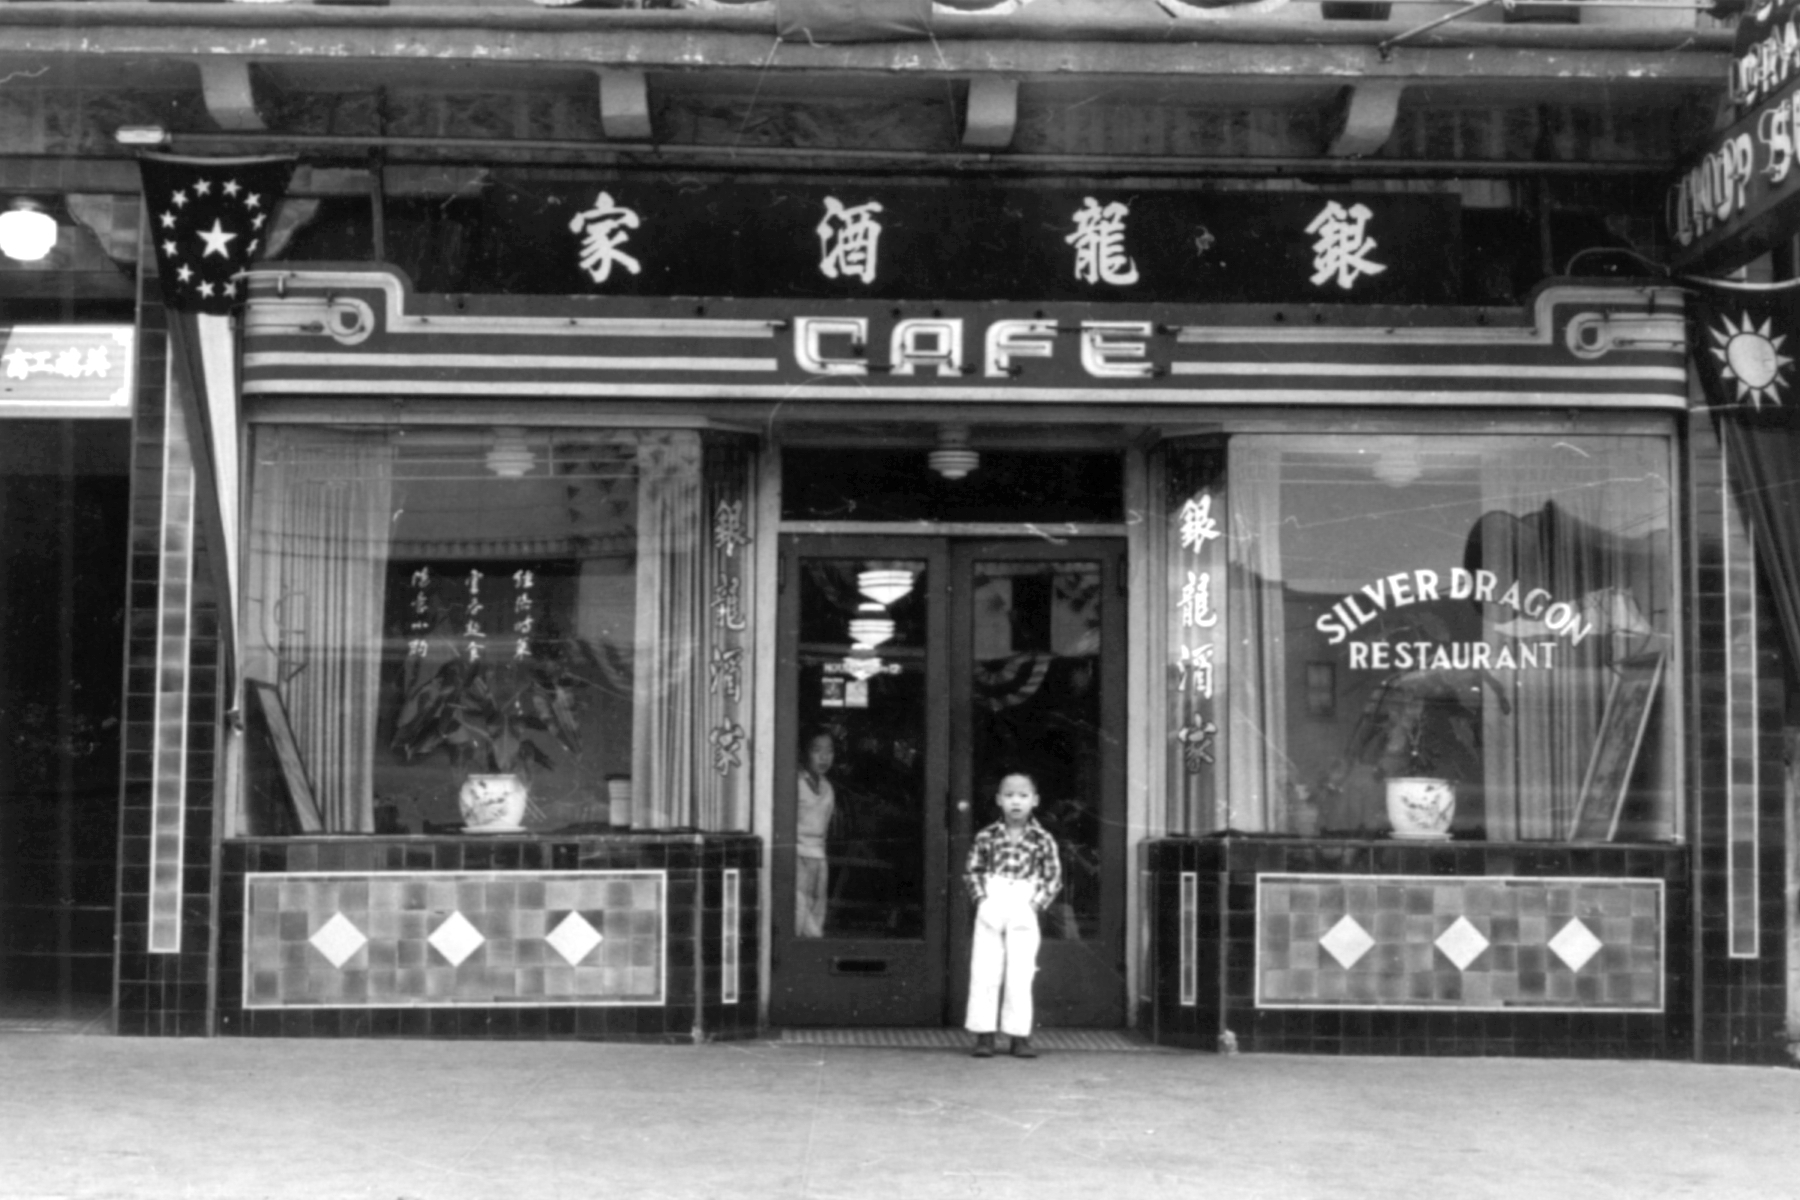 Silver Dragon Restaurant Oakland Chinatown 1955